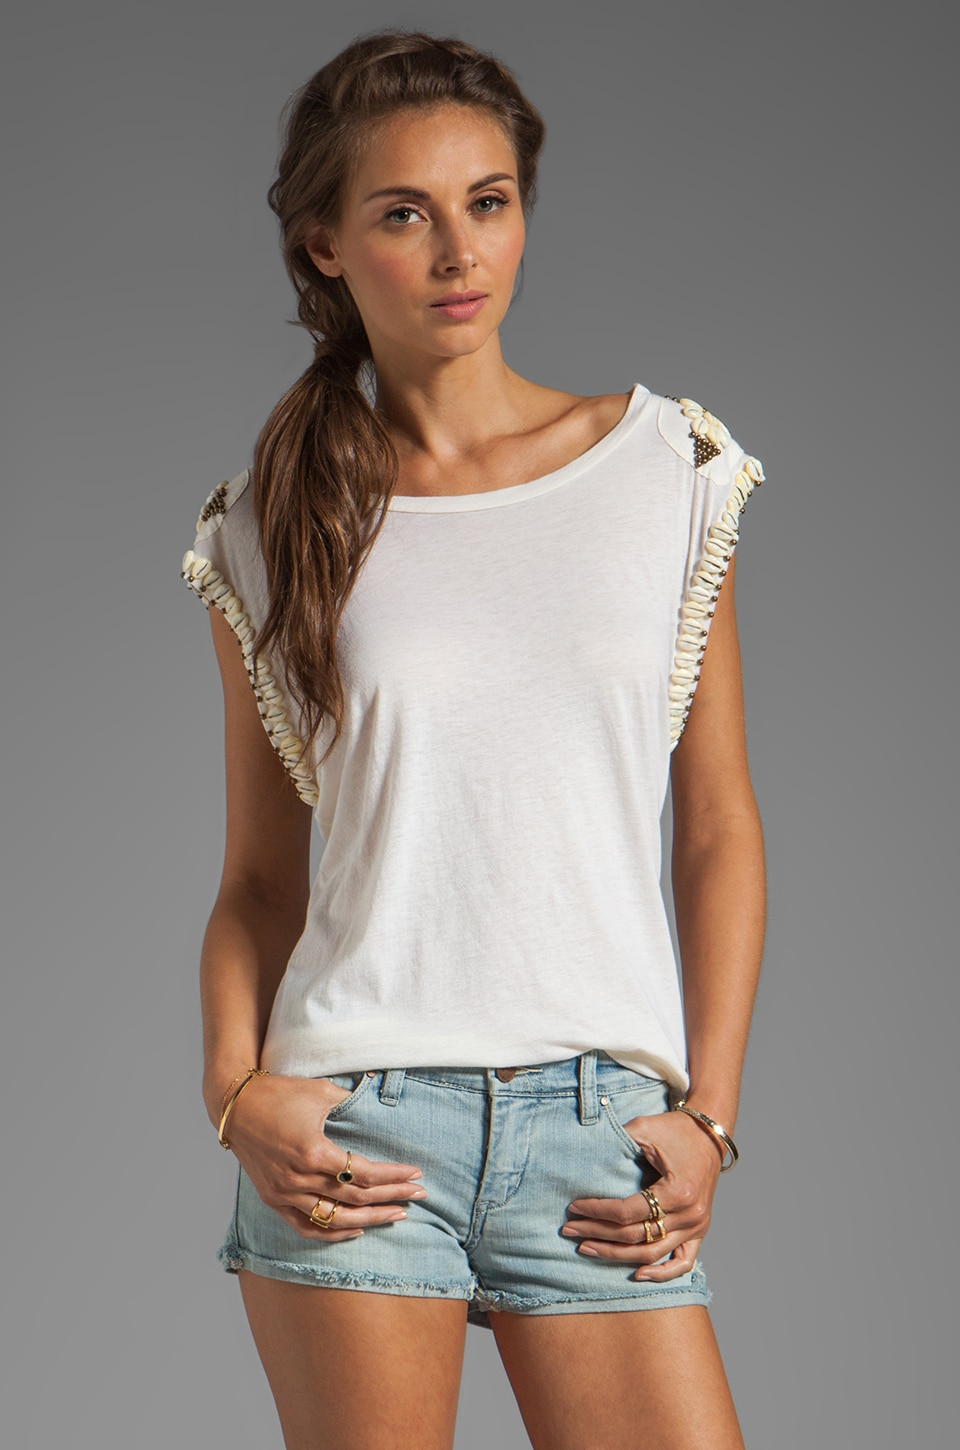 Spell & The Gypsy Collective Hanalei Cowrie Shell Tee in Cream